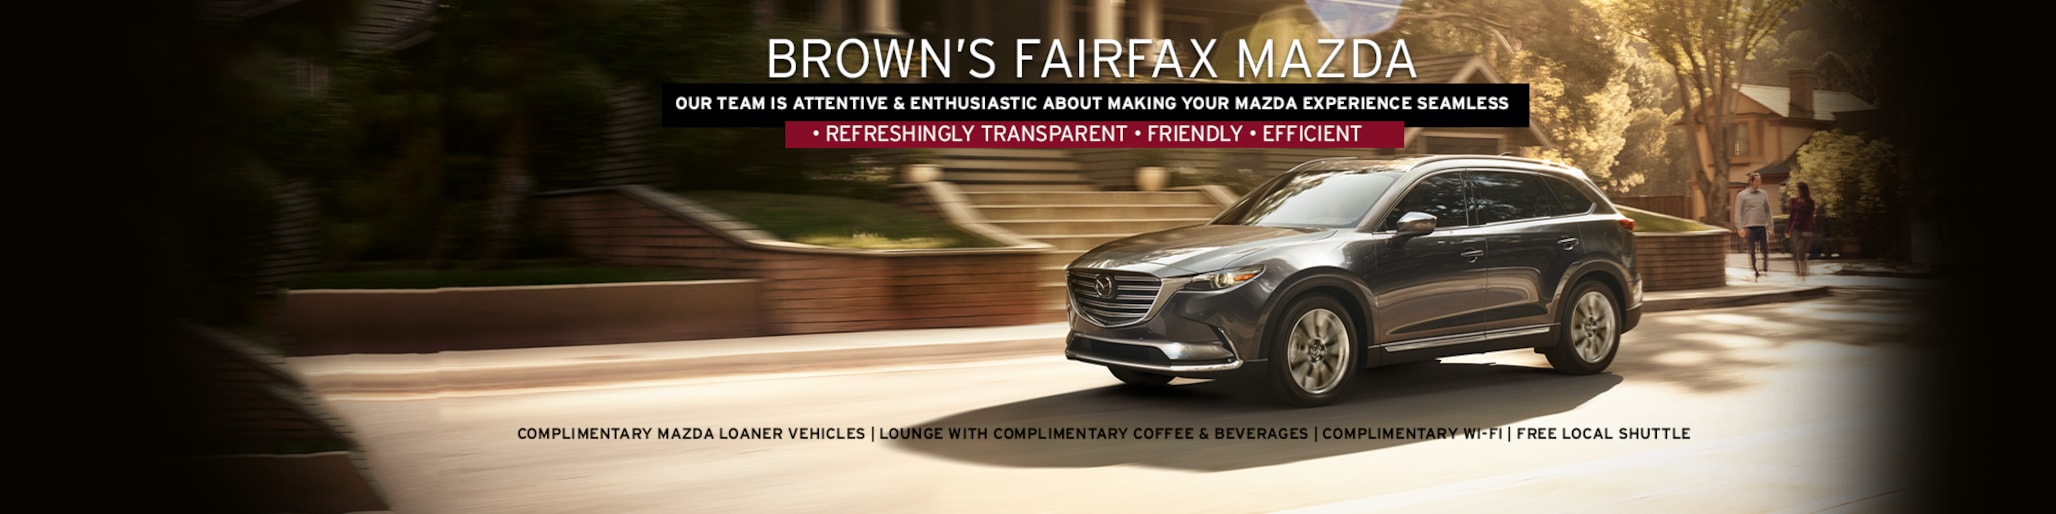 Browns fairfax mazda va mazda dealer serving washington dc coupe solutioingenieria